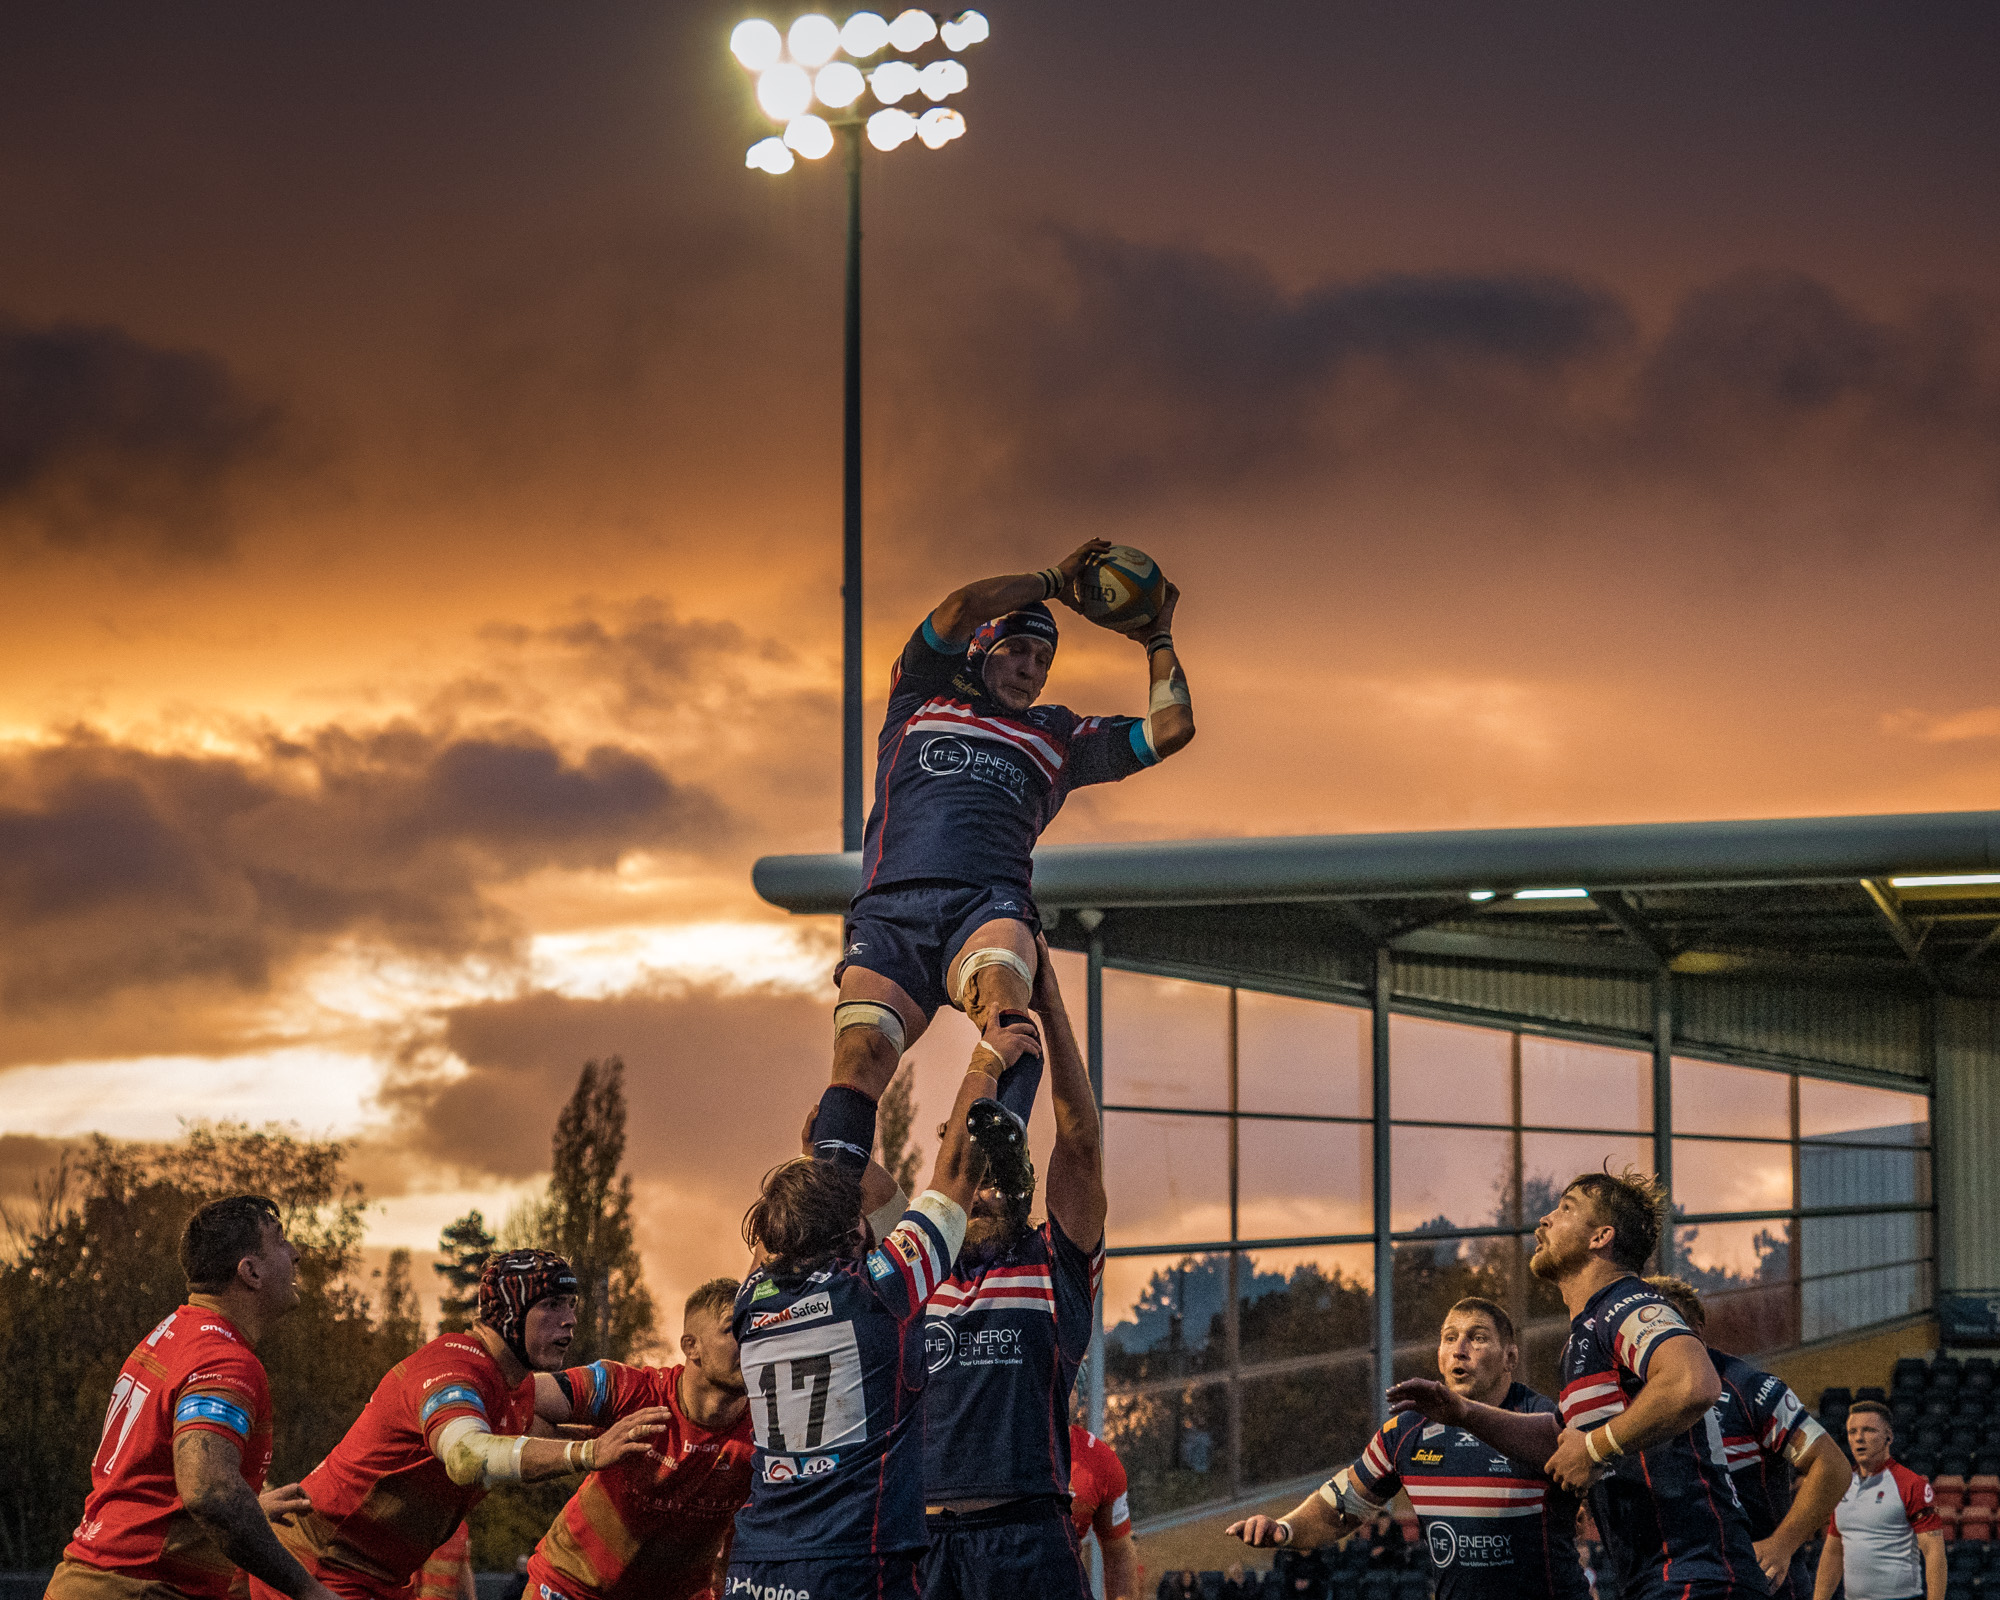 A version of this lineout shot was also quite popular on Instagram. It was the sky that did it!